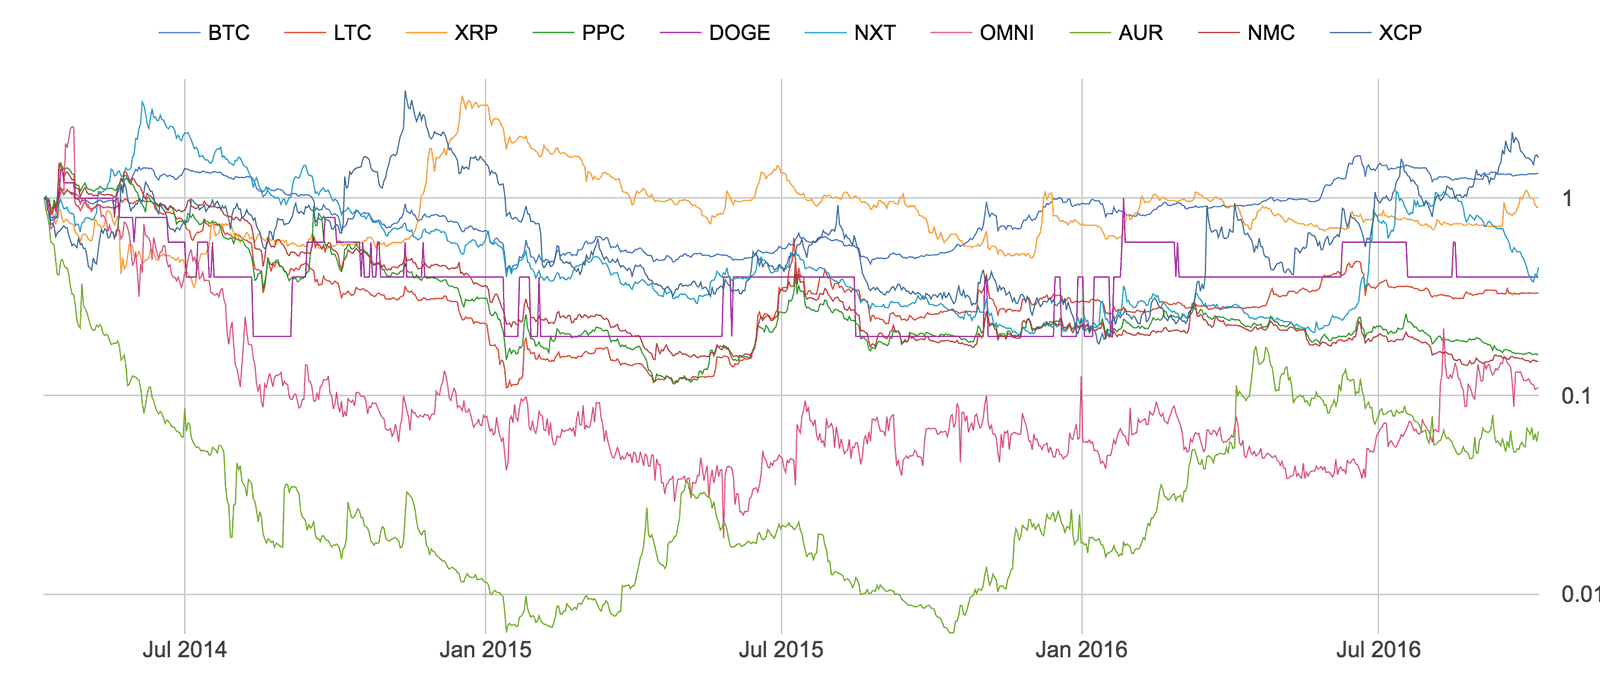 Top 10 coins, returns starting 30 months ago